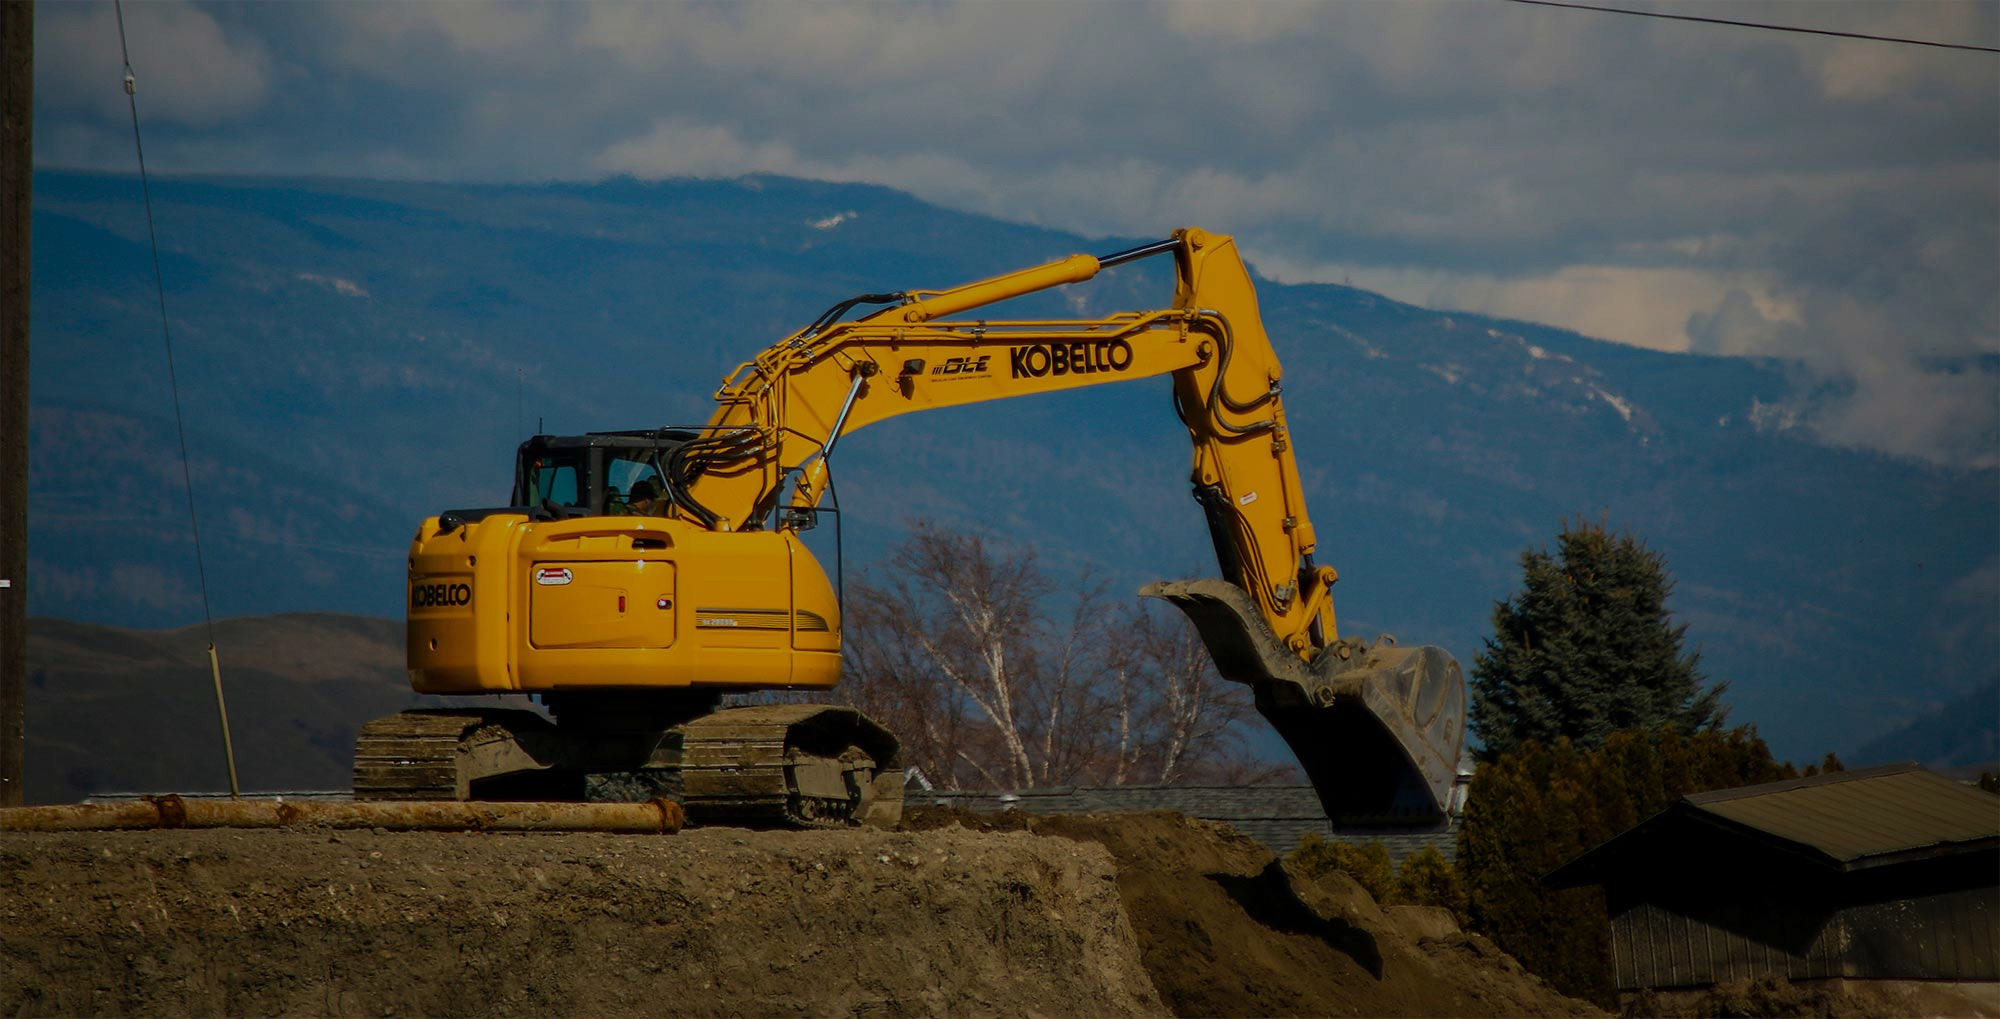 An excavator on a work site digging a hole